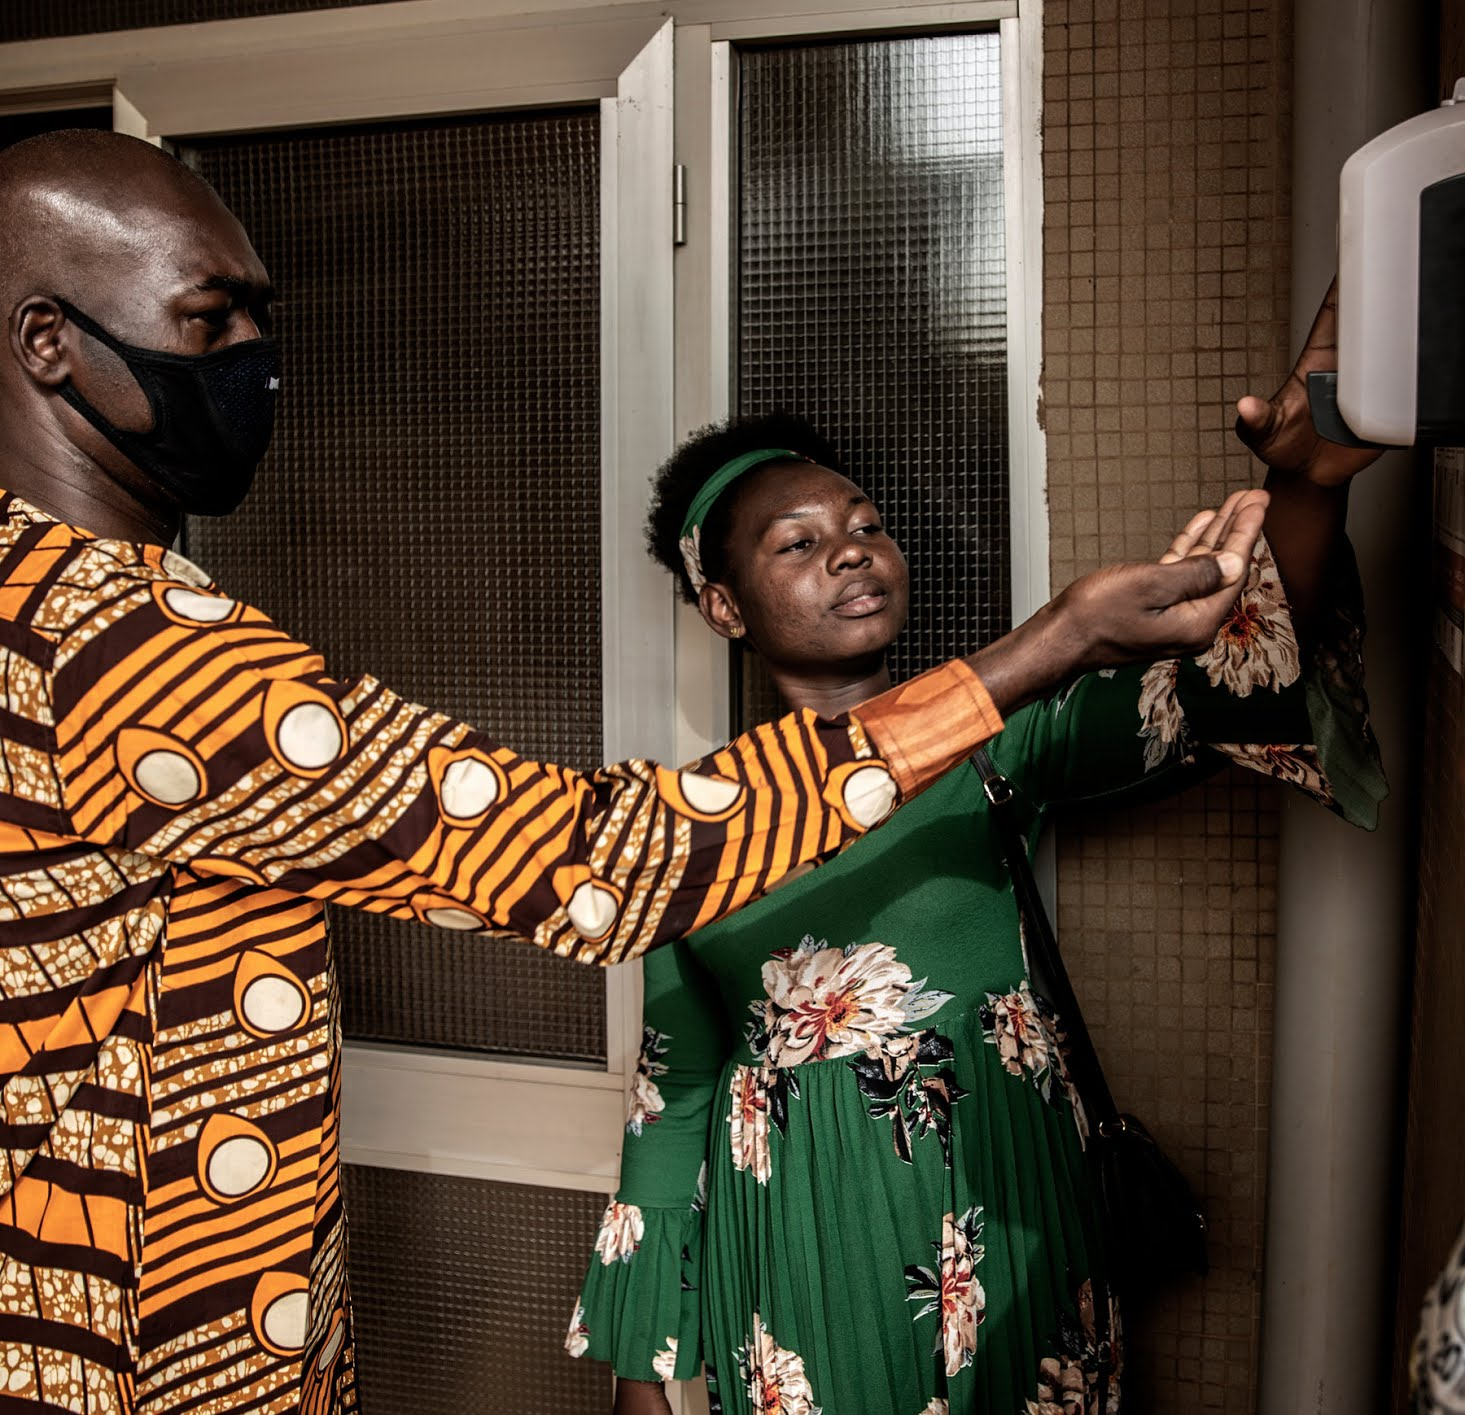 Using hand sanitizer before entering the Assemblies of God Church in Burkina Faso's capital, Ouagadougou, in March.